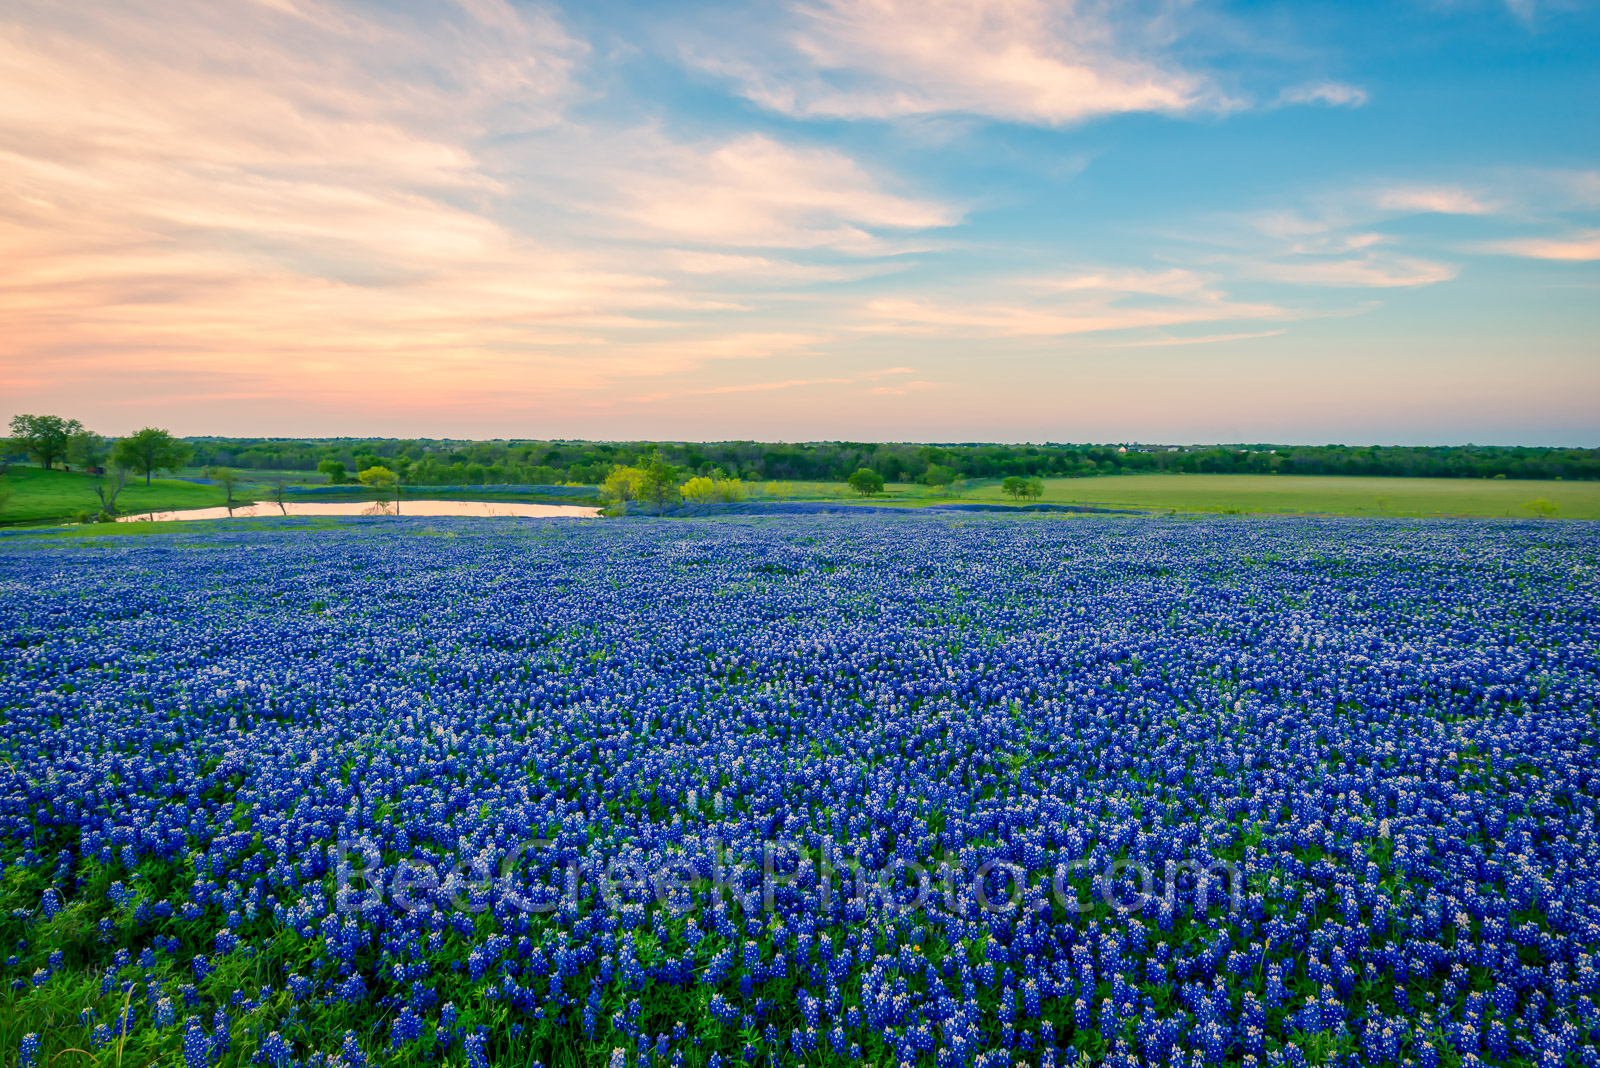 Bluebonnet images, pictures of bluebonnets, Texas Bluebonnets, bluebonnet sunset, bluebonnets, sunset,  texas, fileld of bluebonnets, image of bluebonnets, pictures of bluebonnets,  photos of texas, t, photo